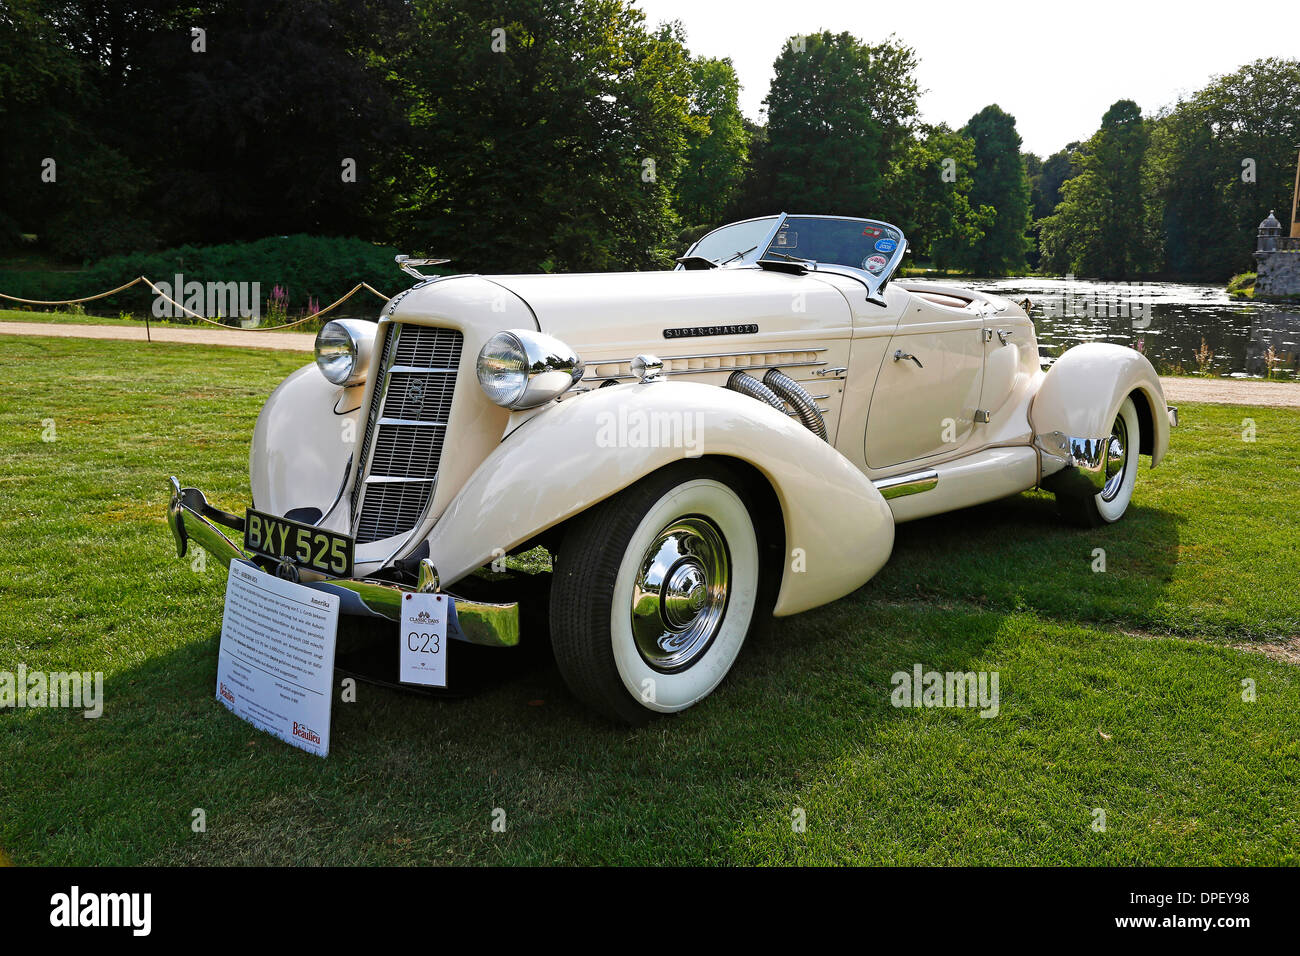 Classic car, Auburn 851, built in 1935, vintage car meet, Schloss Dyck Classic Days 2013, Schloss Dyck Castle, Jüchen - Stock Image